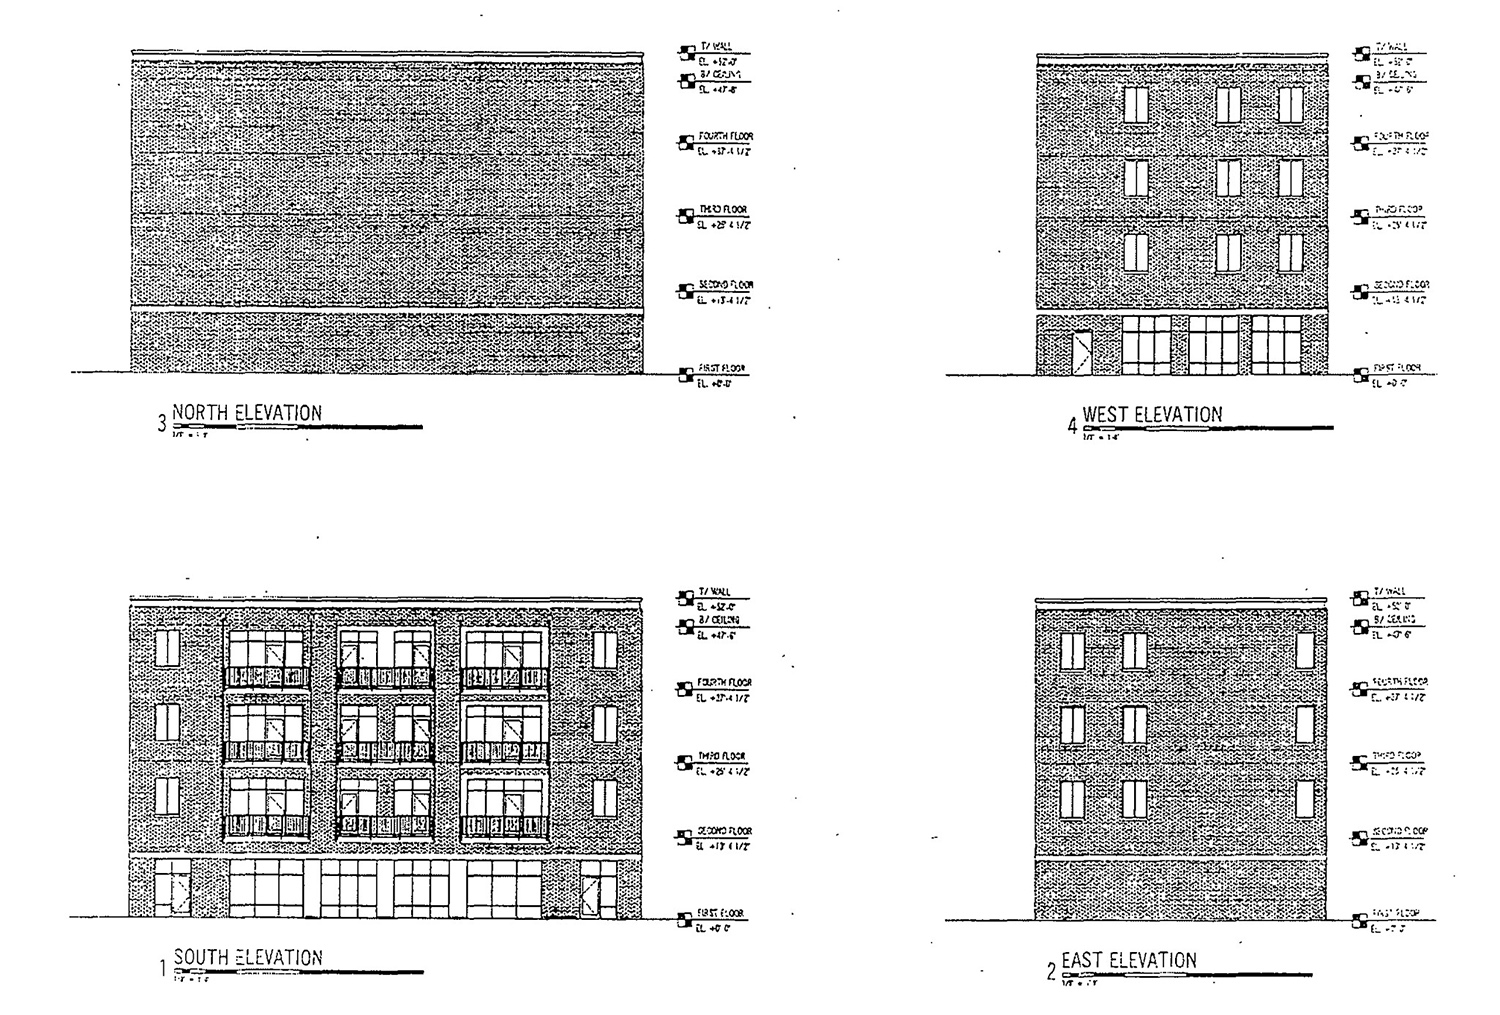 Mixed-Use Building Elevations at 1601 N Western Avenue. Drawing by Design Studio 24